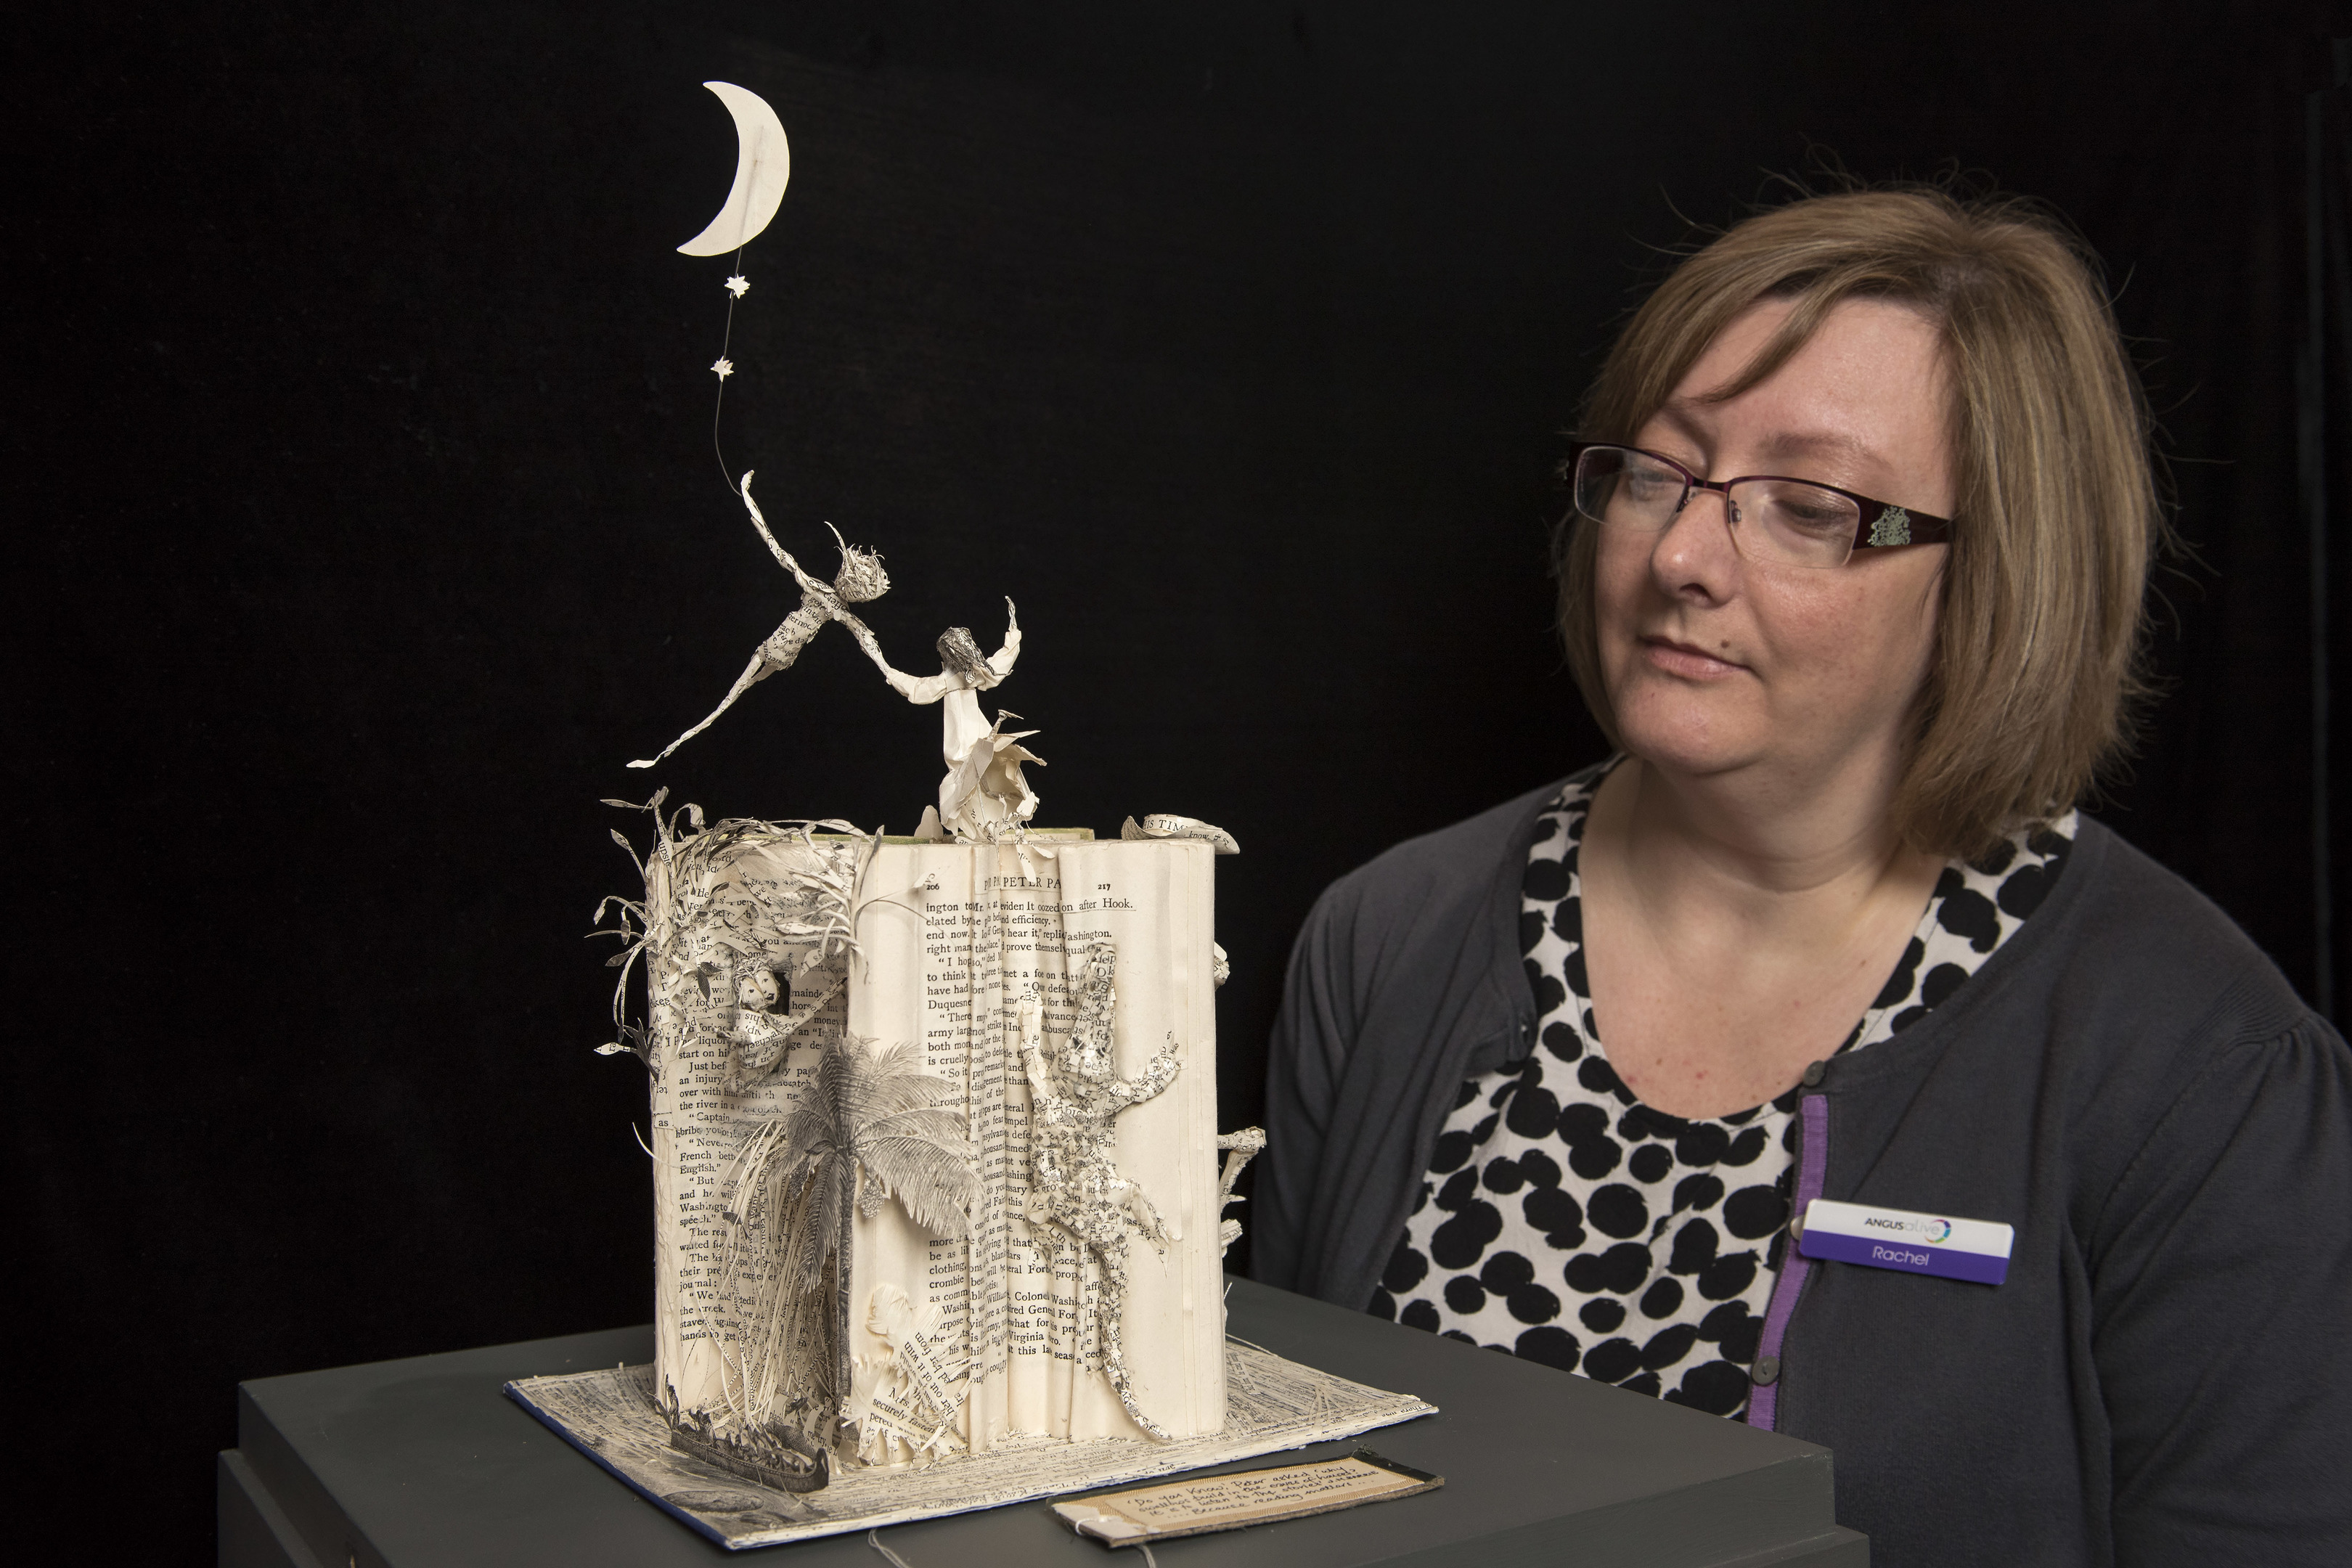 Rachel Jackson with the Peter Pan book sculpture now on loan to the Gateway to the Glens Museum.